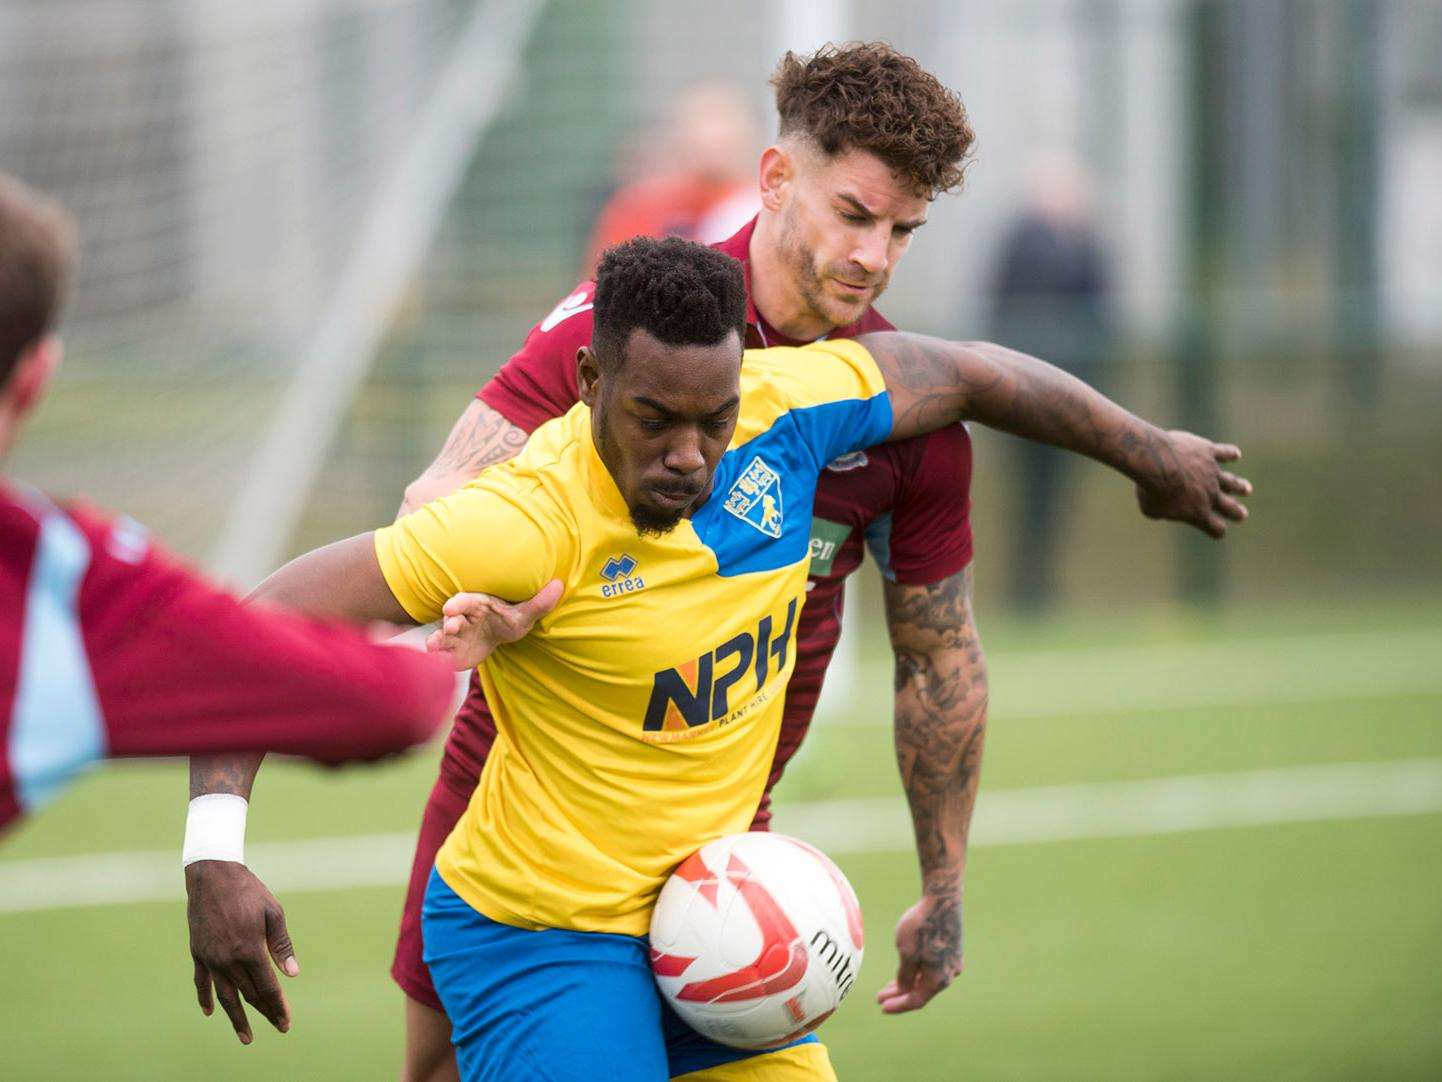 ON TARGET: New striker Leon Antoine earned Newmarket a point. Picture: Mark Westley